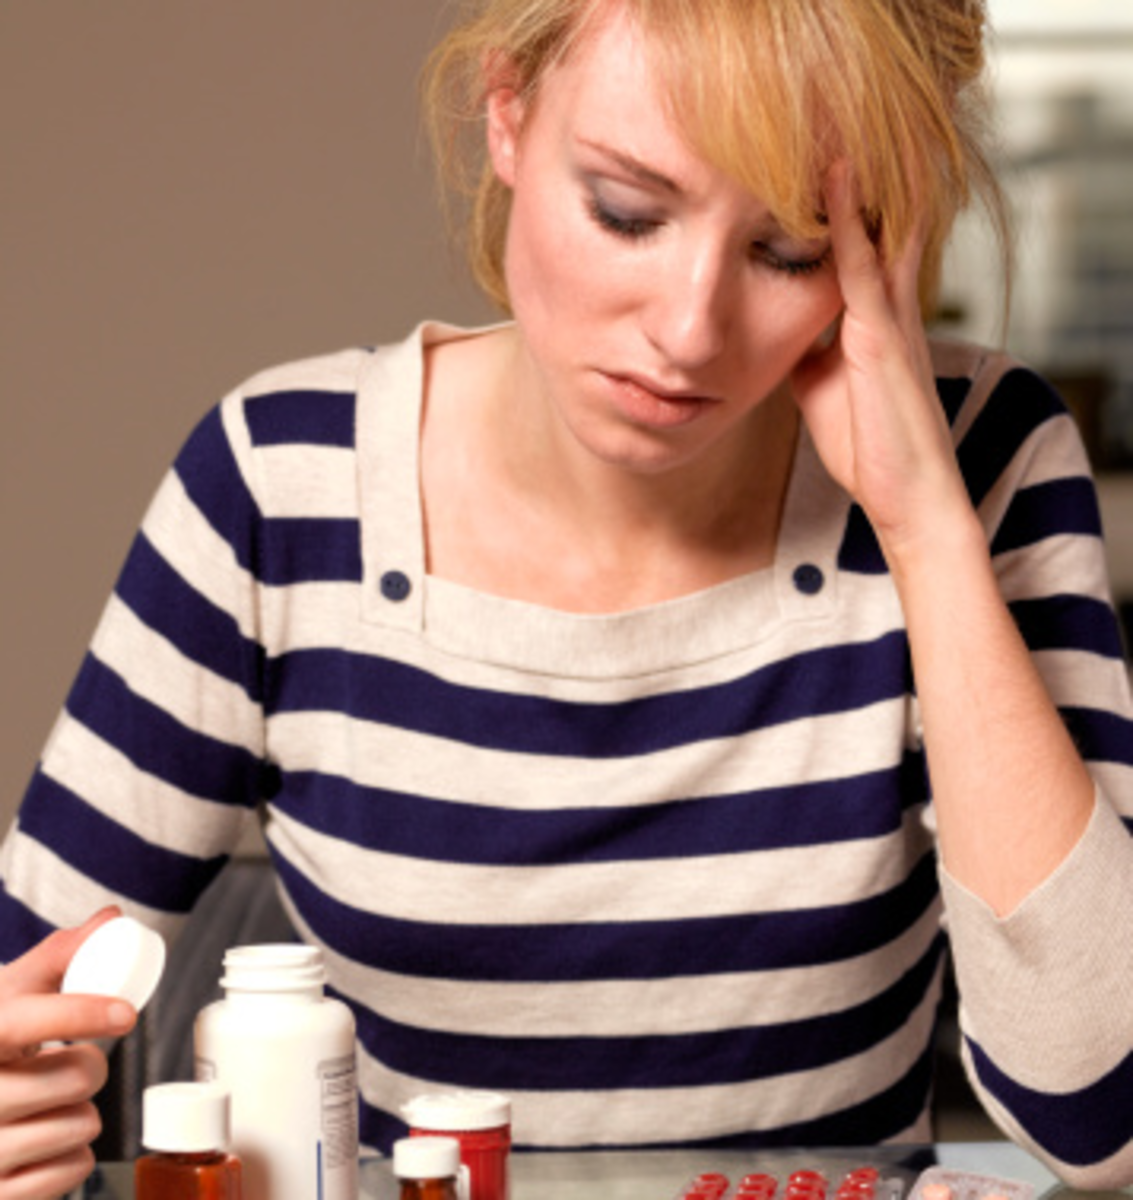 most of the side effects that you experience after taking an antifungal may be caused by die-off reaction of candida.